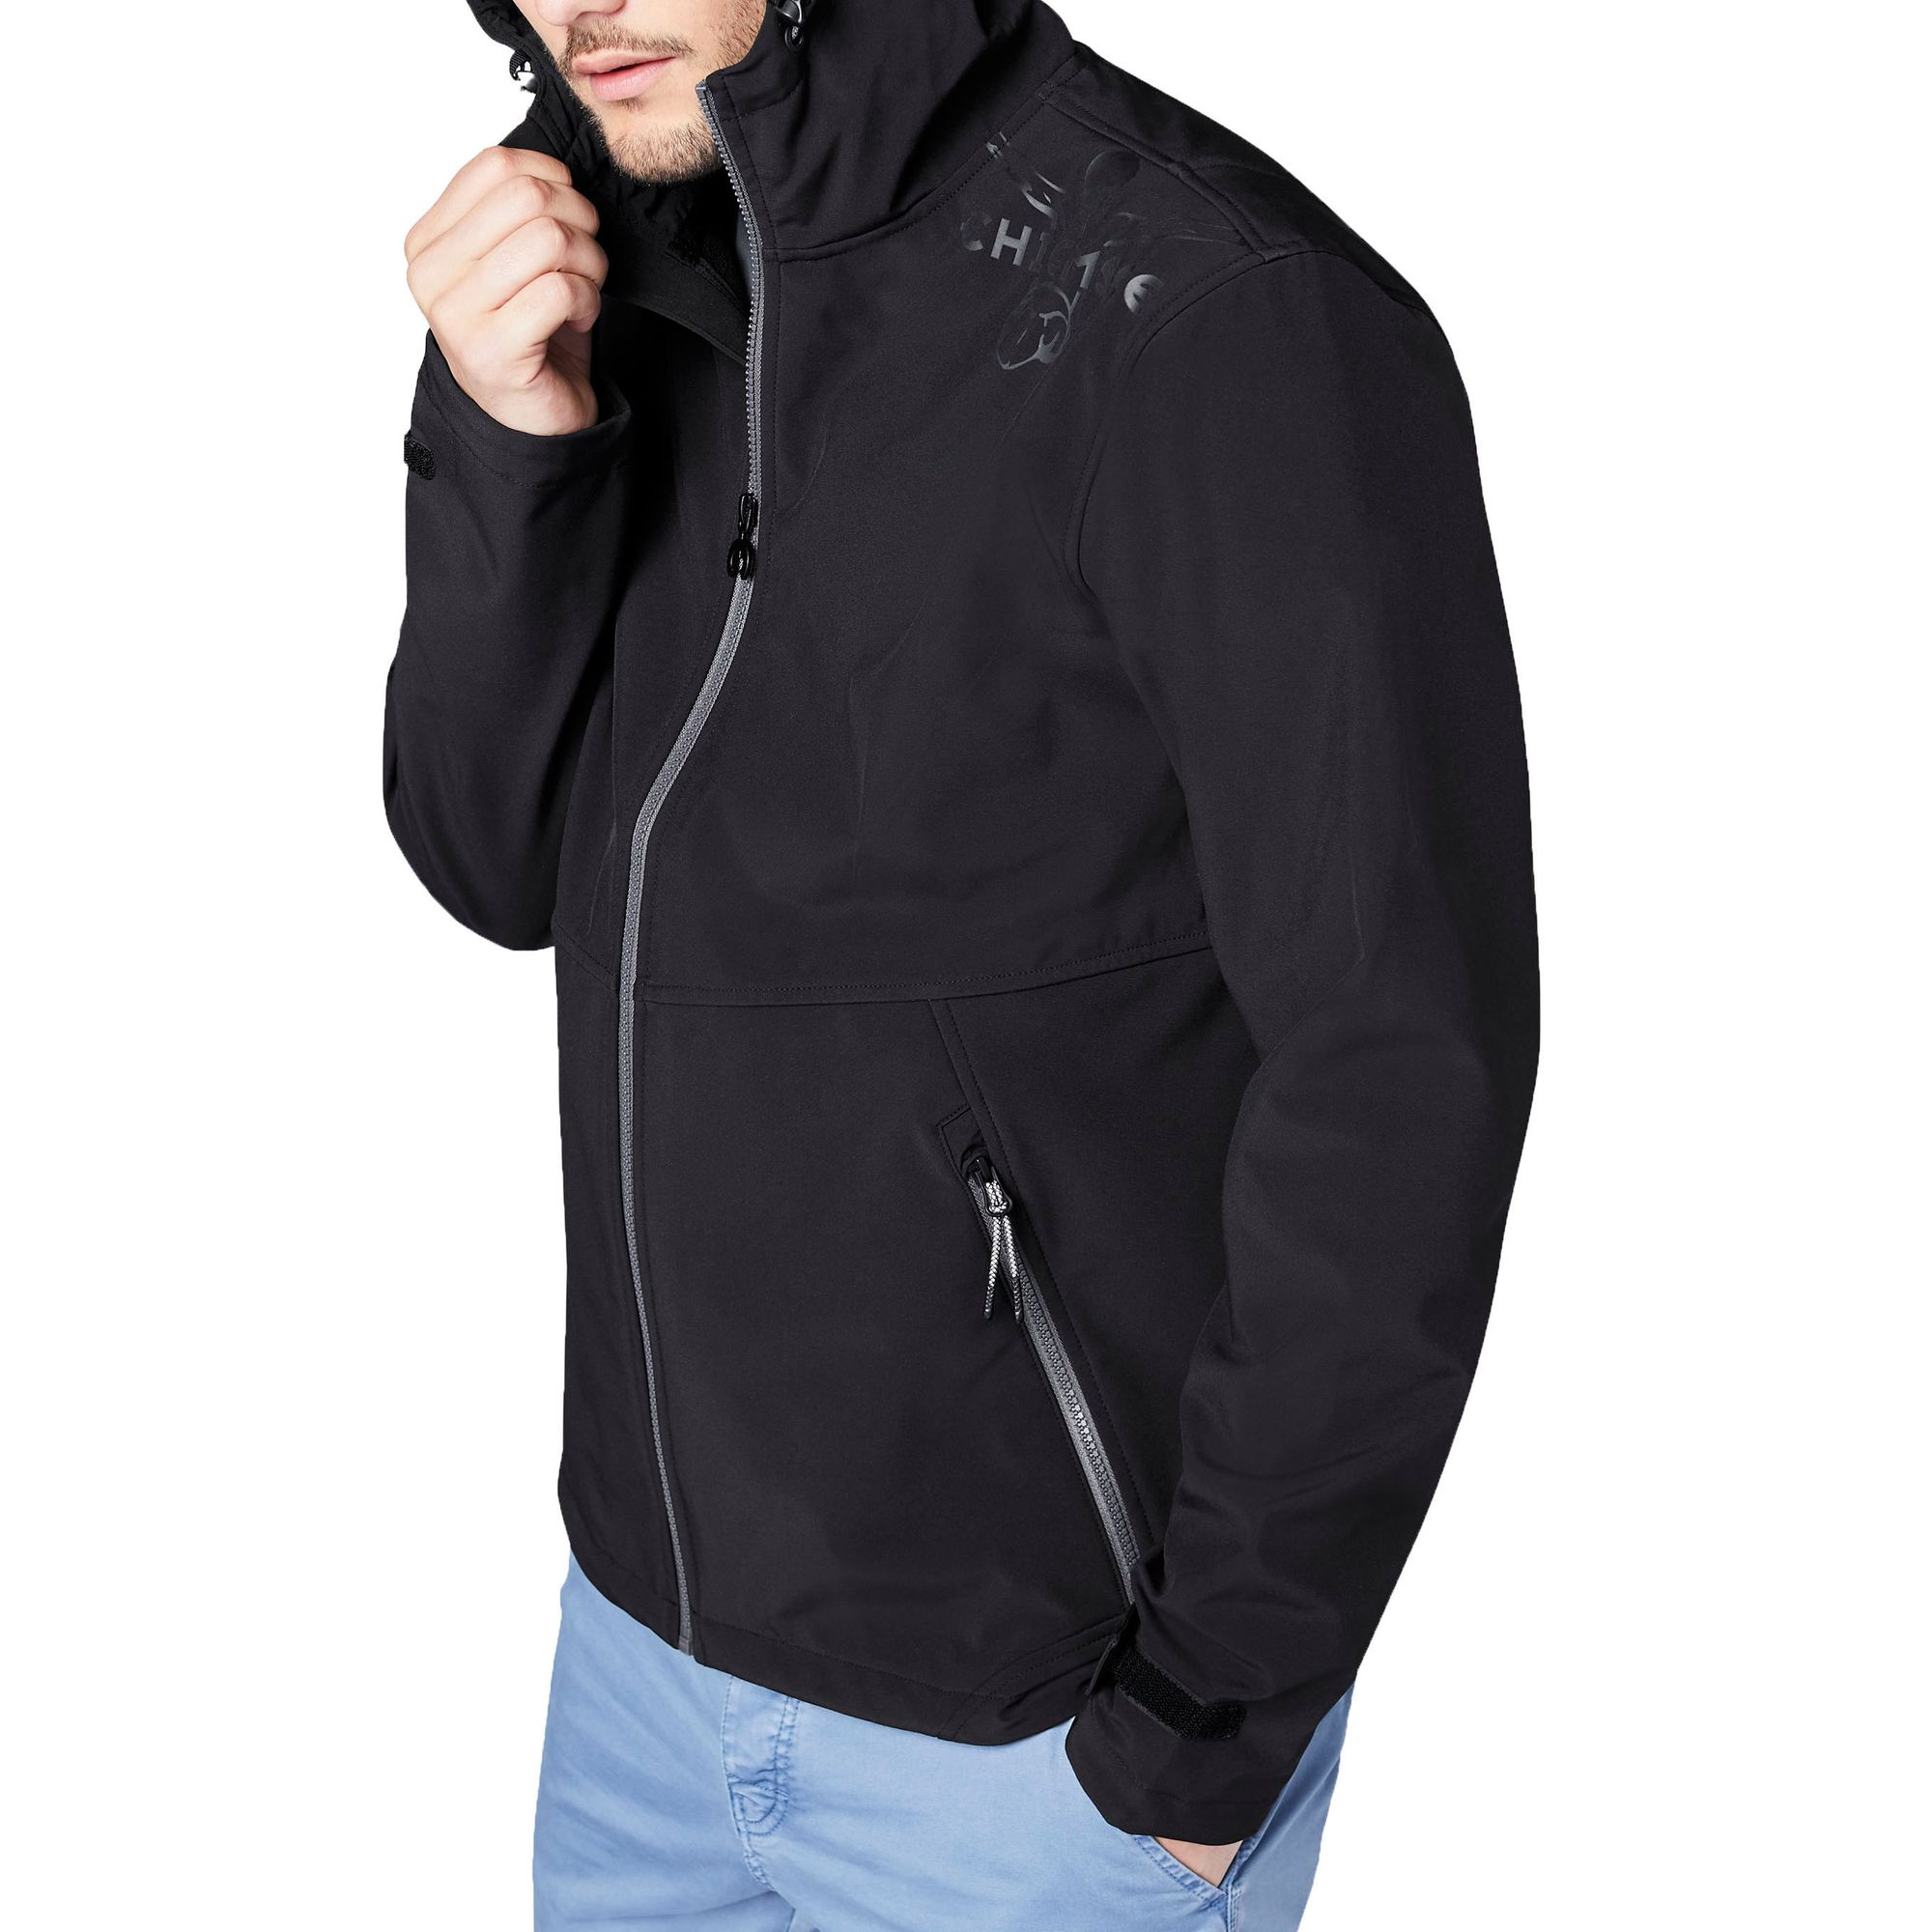 Chiemsee Herren Funktionsjacke Renaca Men mit Kapuze Softschelljacke Regular Fit  – Bild 6